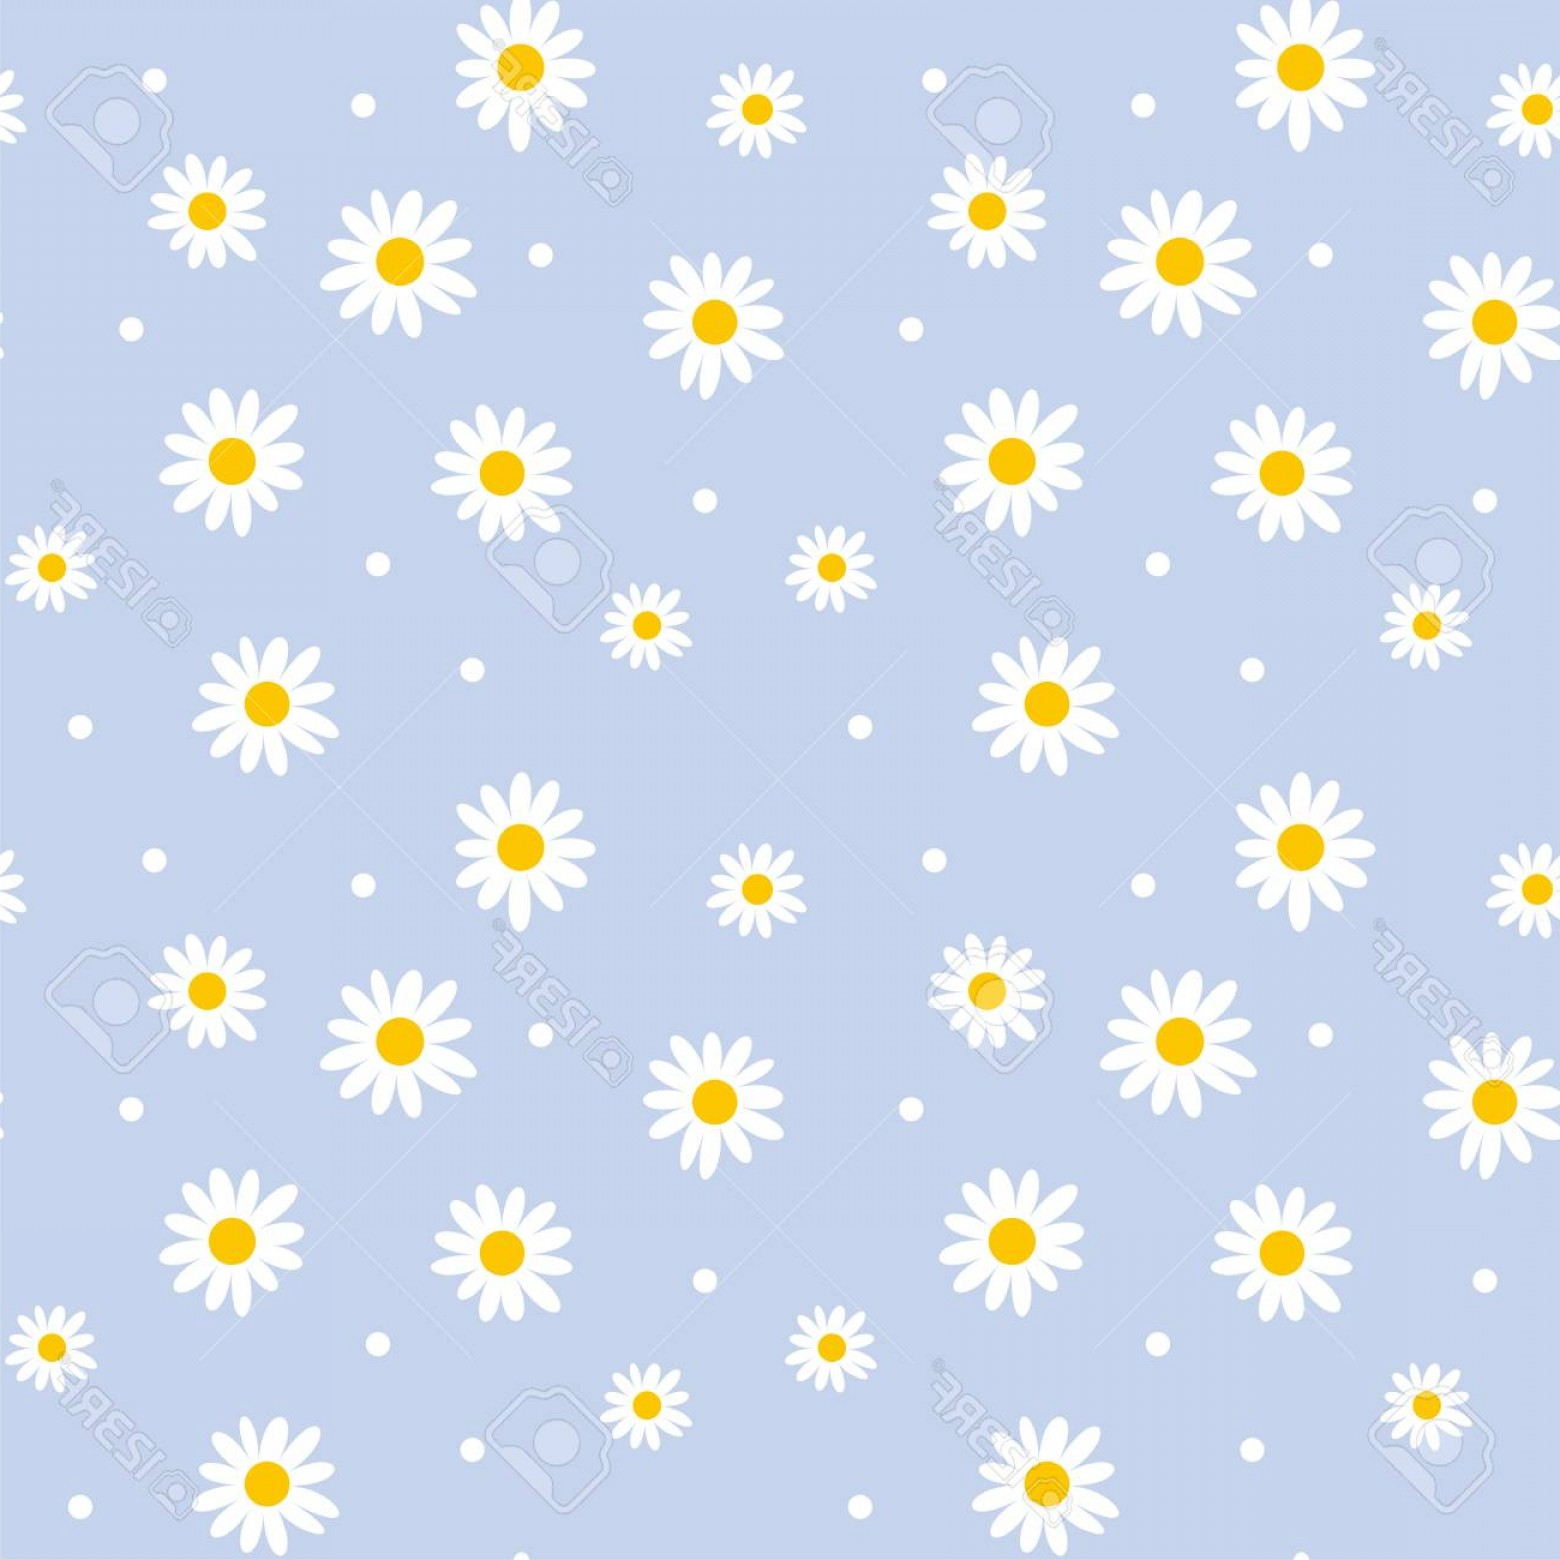 Simple Vector Daisy: Photostock Vector Daisy Cute Seamless Pattern Floral Retro Style Simple Motif White Flowers On Color Background Fabric